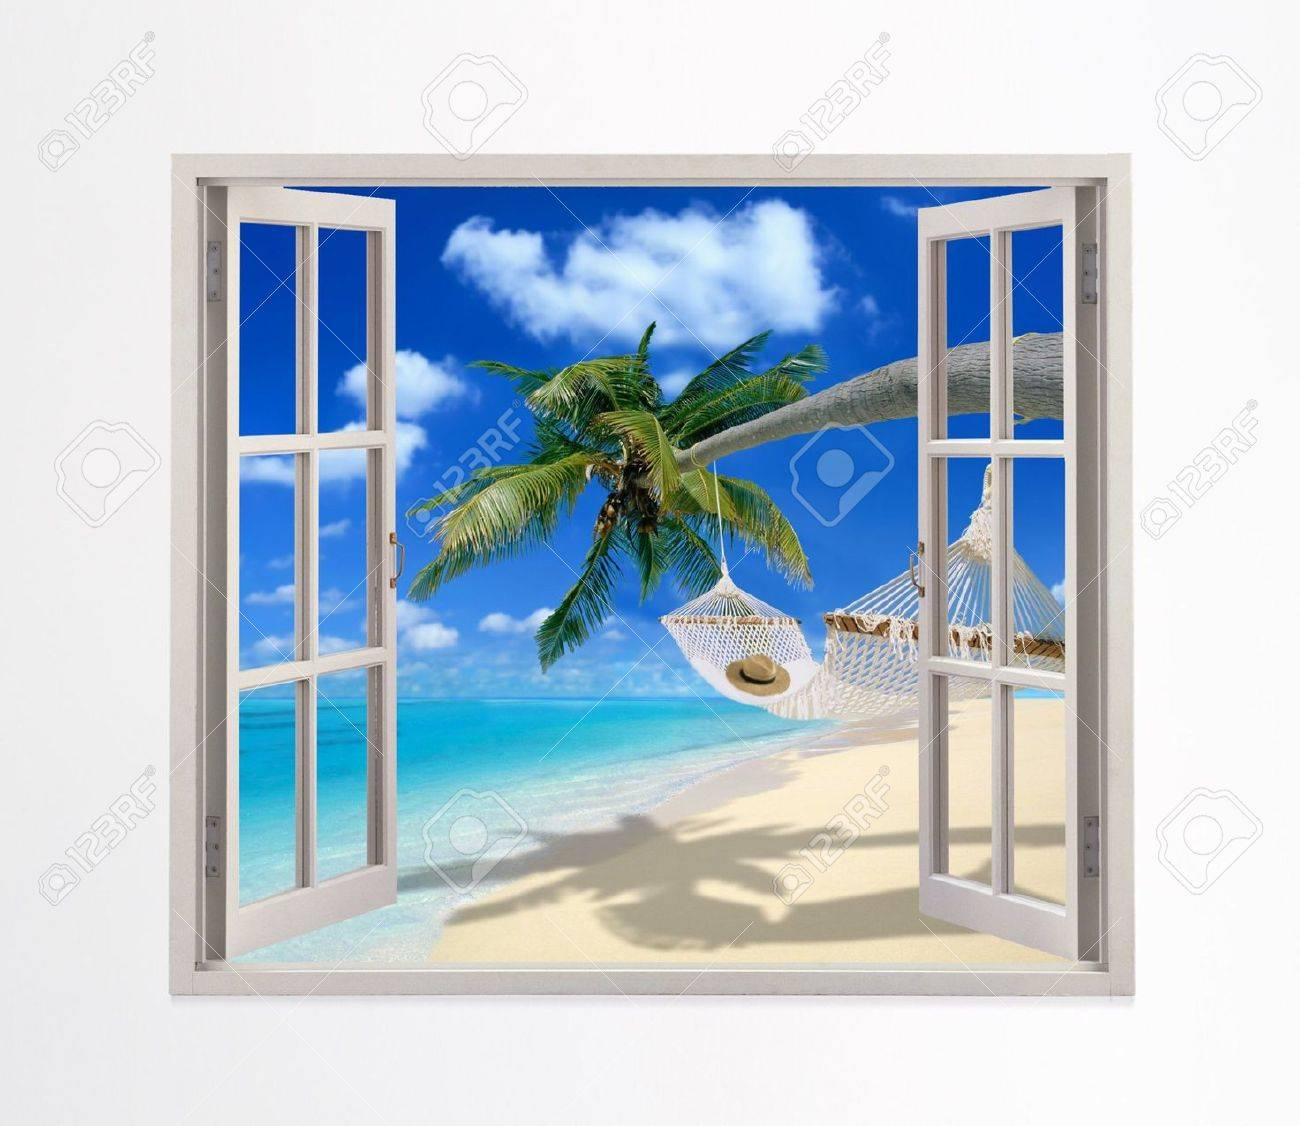 Open window on a beach stock photo 5511599